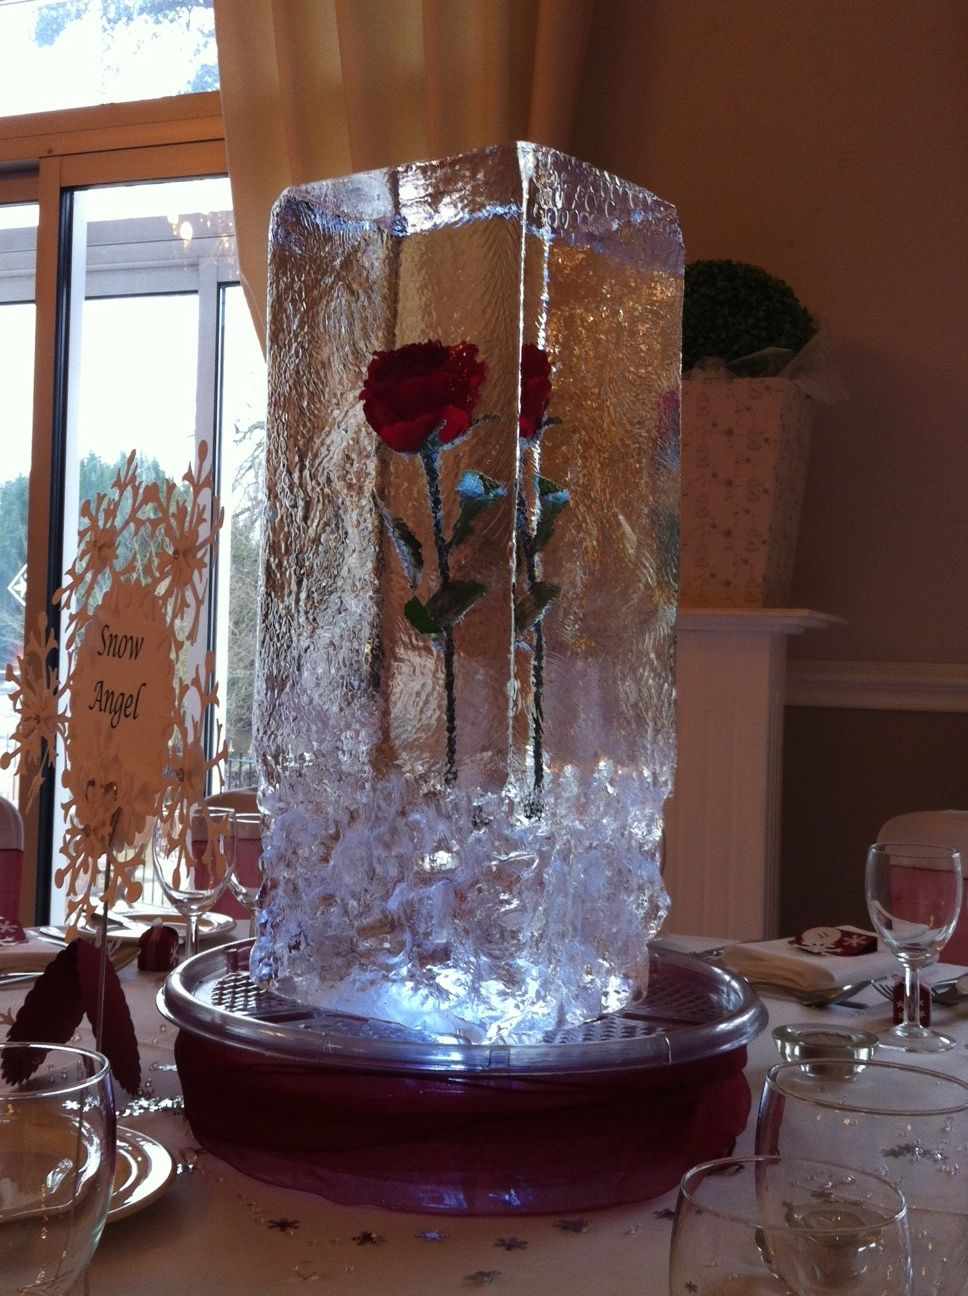 Ice sculpture table centrepiece single red rose in